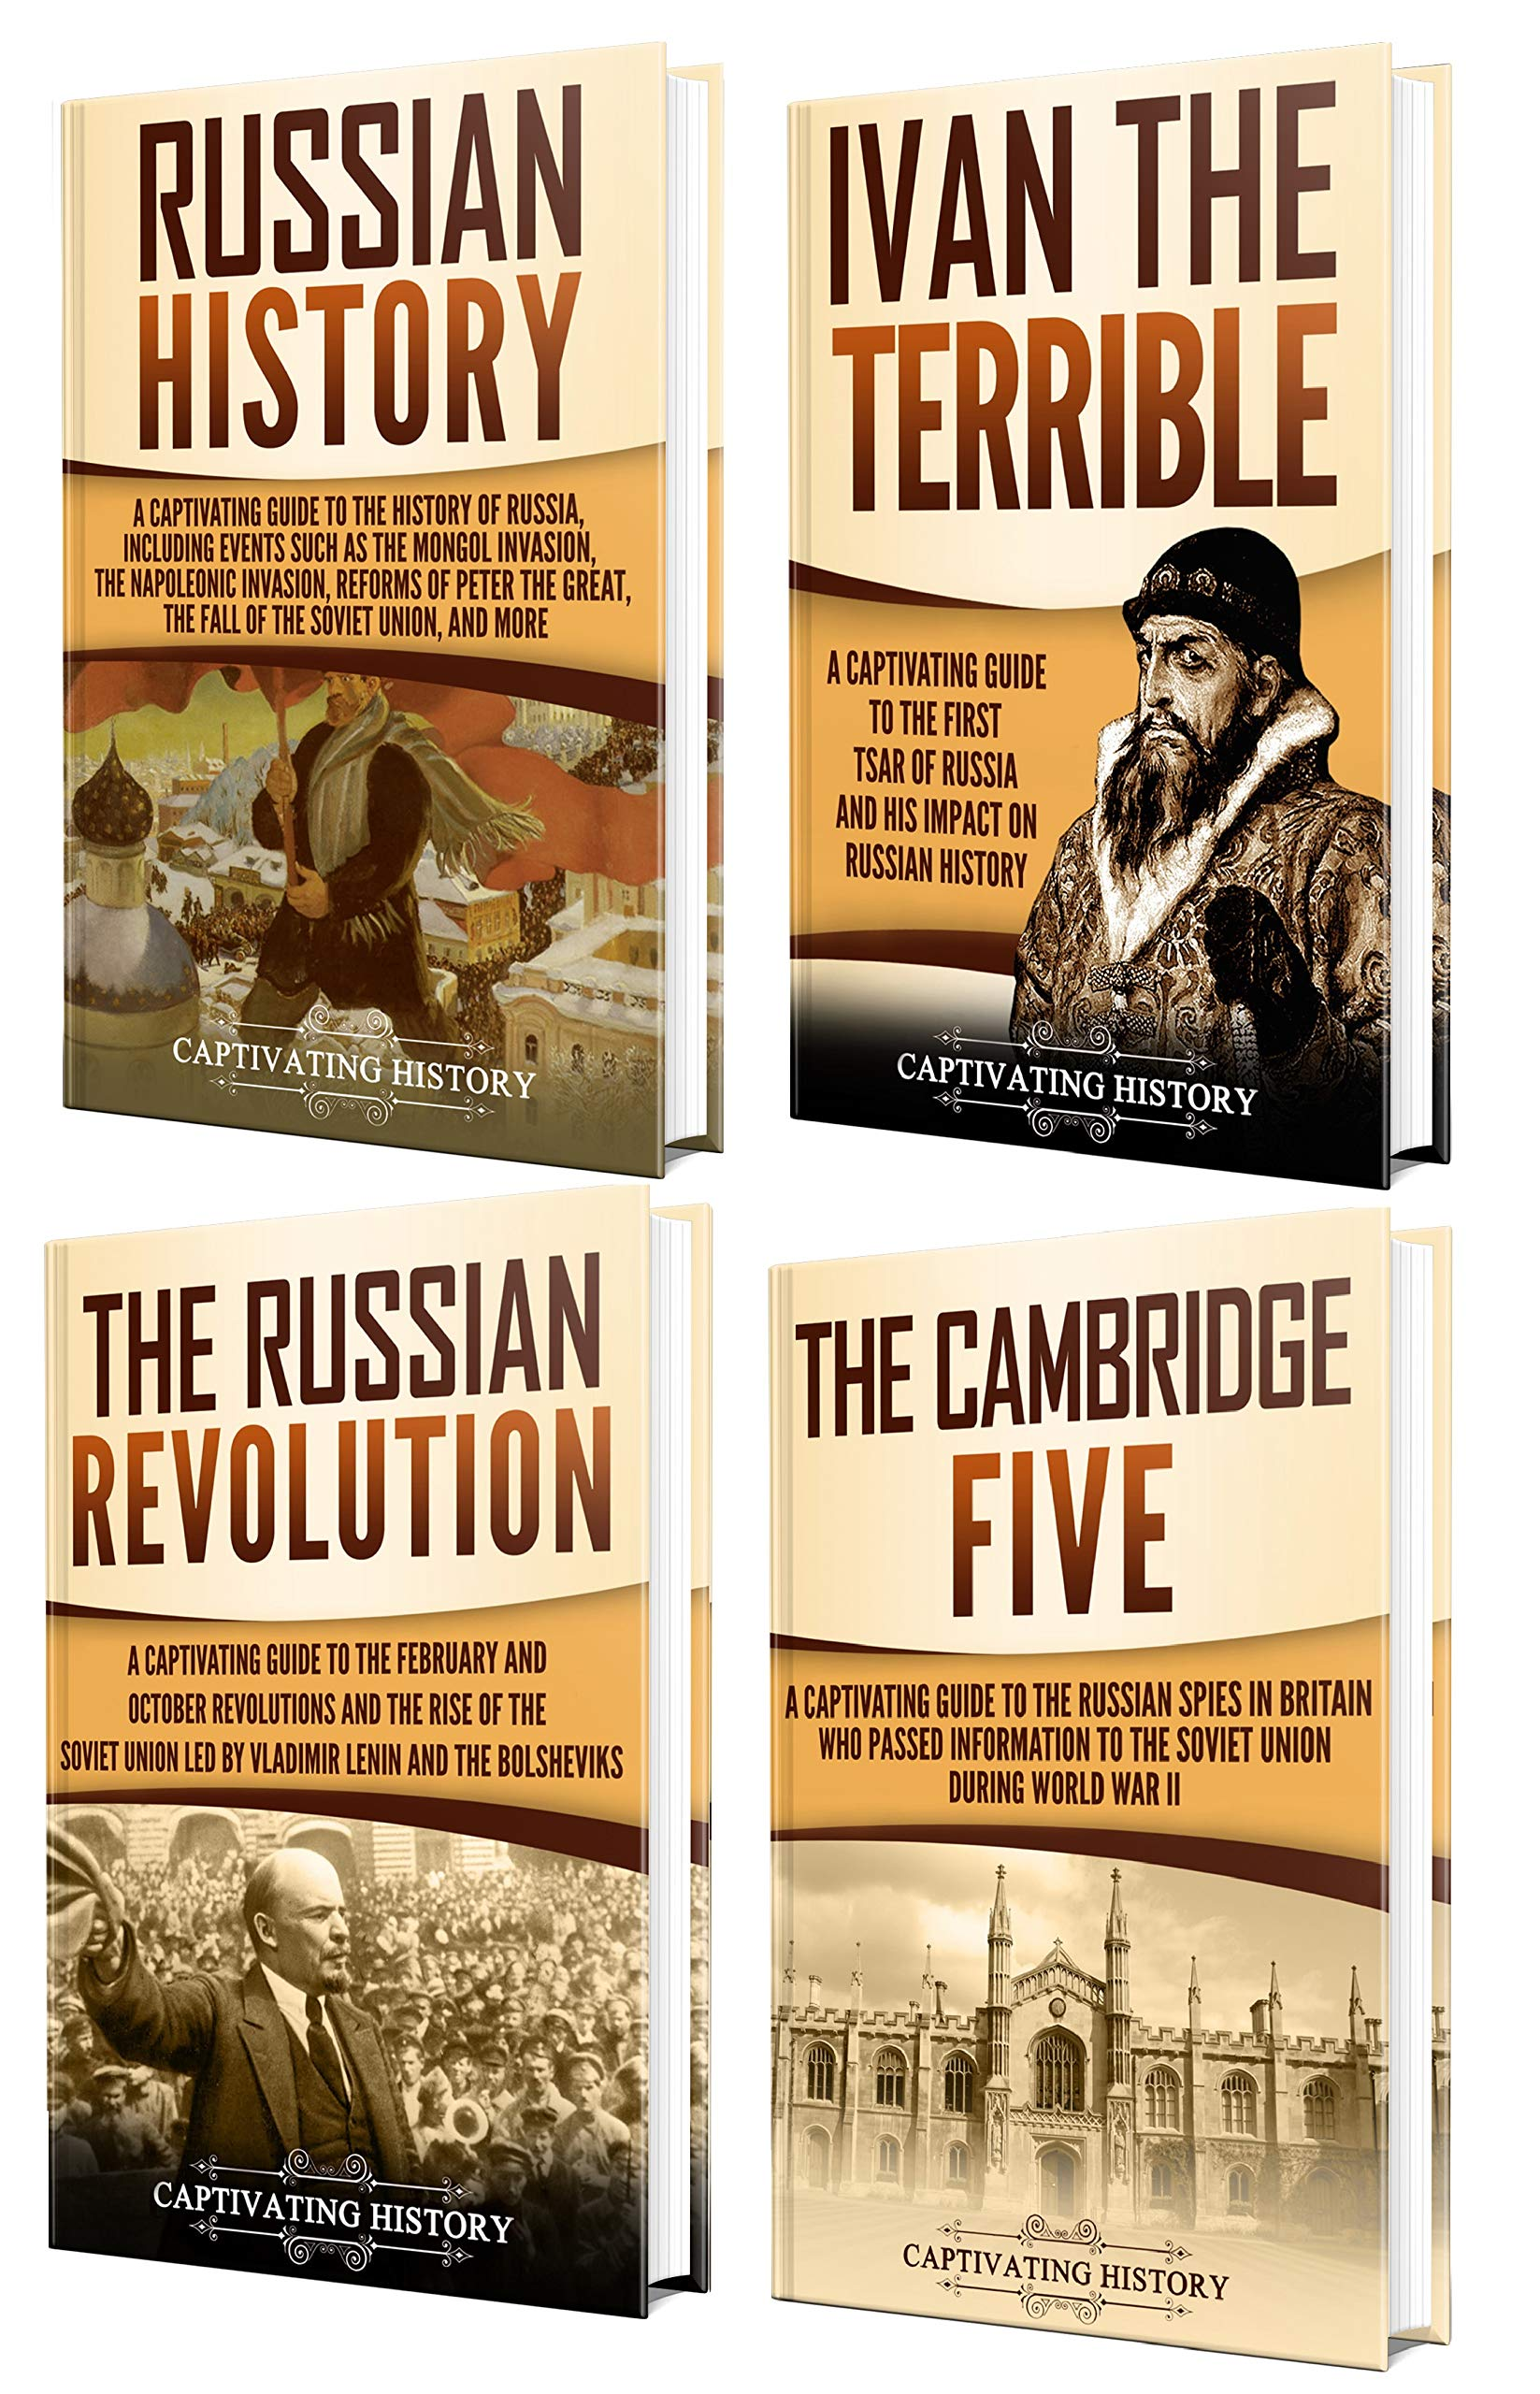 History Of Russia  A Captivating Guide To Russian History Ivan The Terrible The Russian Revolution And Cambridge Five  English Edition